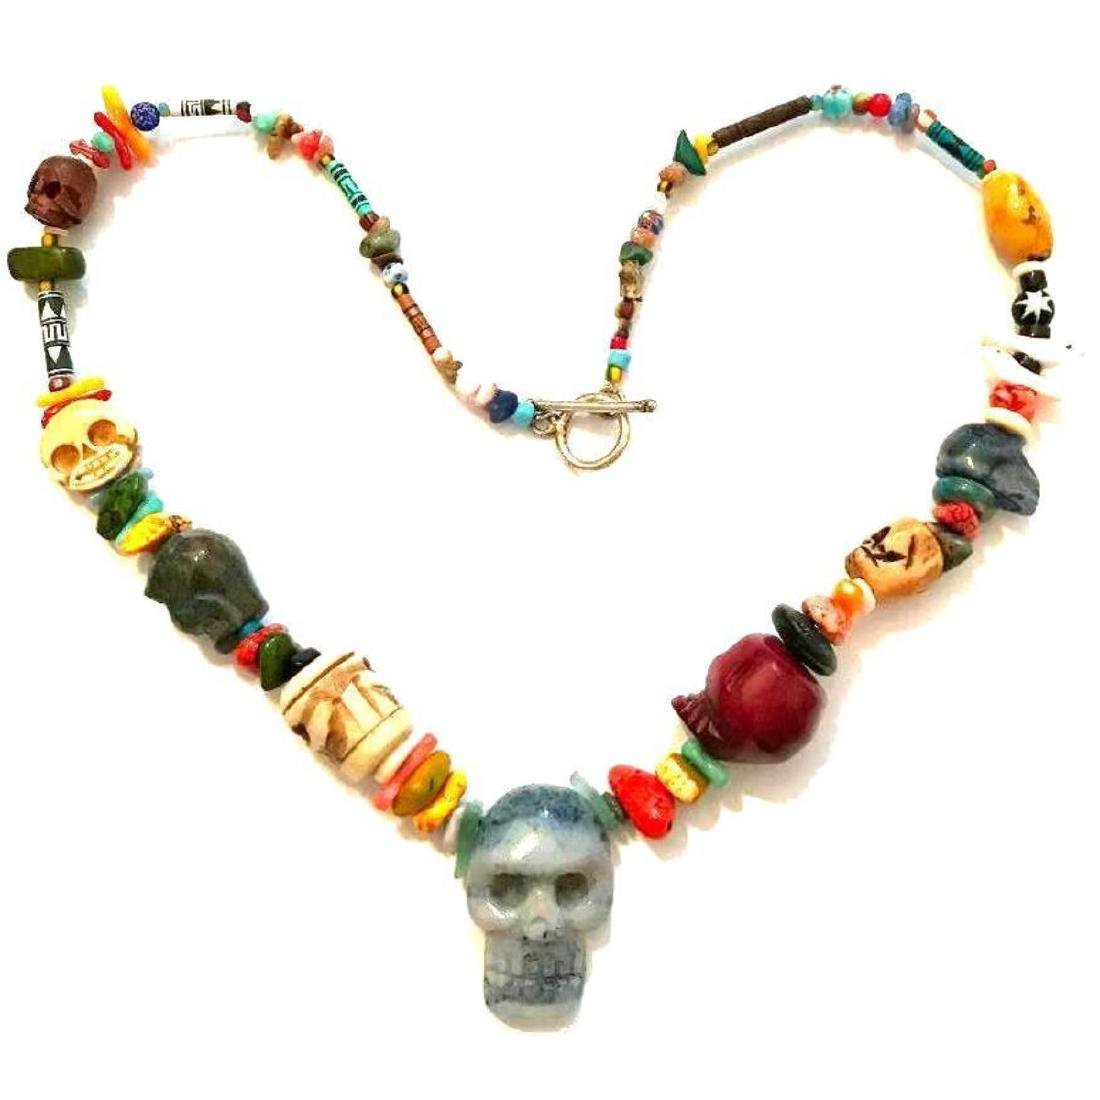 Hand-carved Artisan Skull Beads Necklace